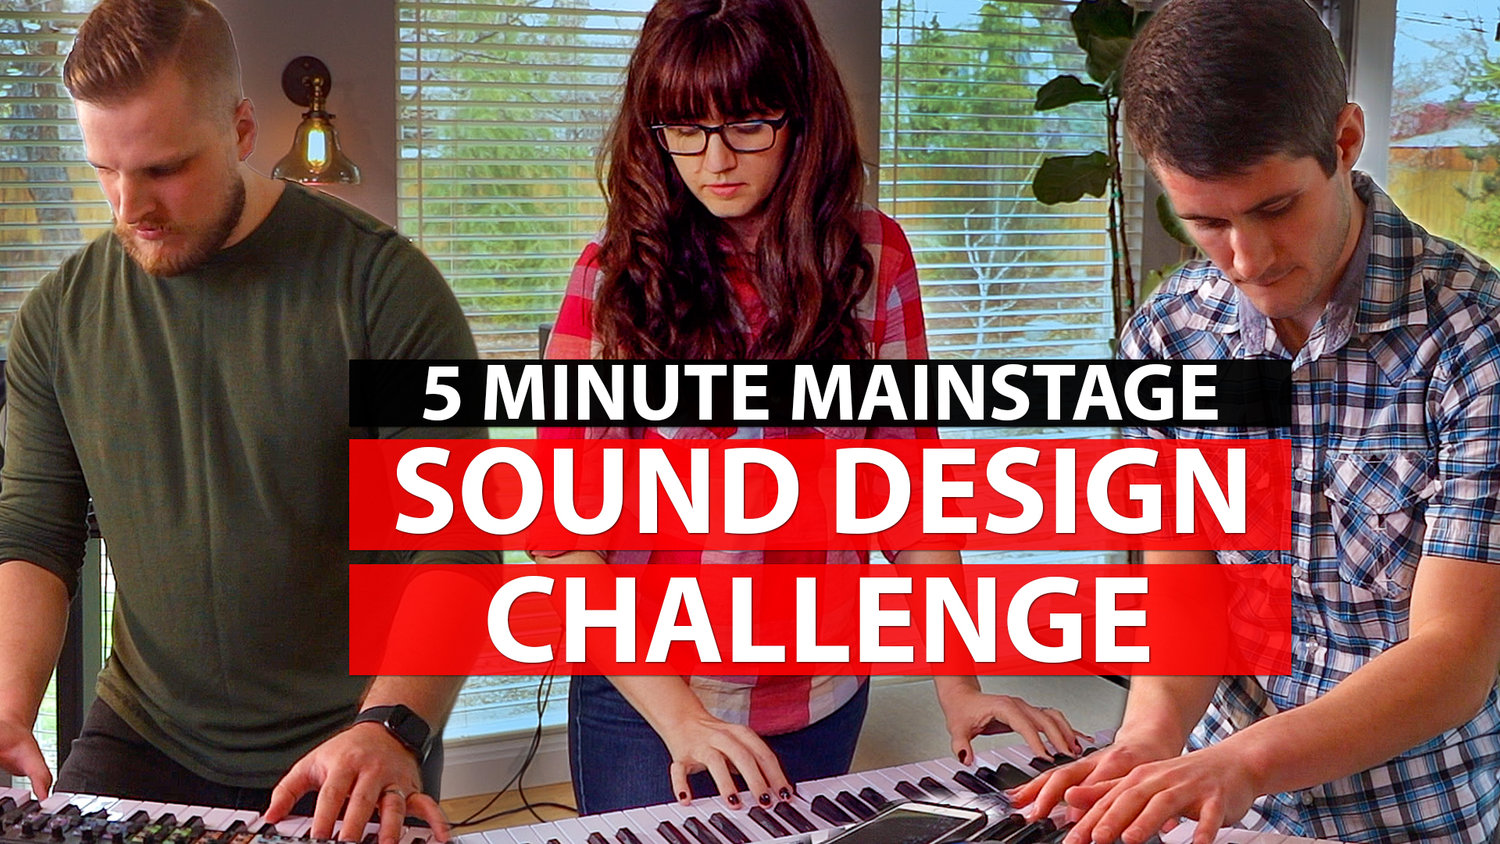 Create a MainStage Worship Patch in 5 Minutes Challenge